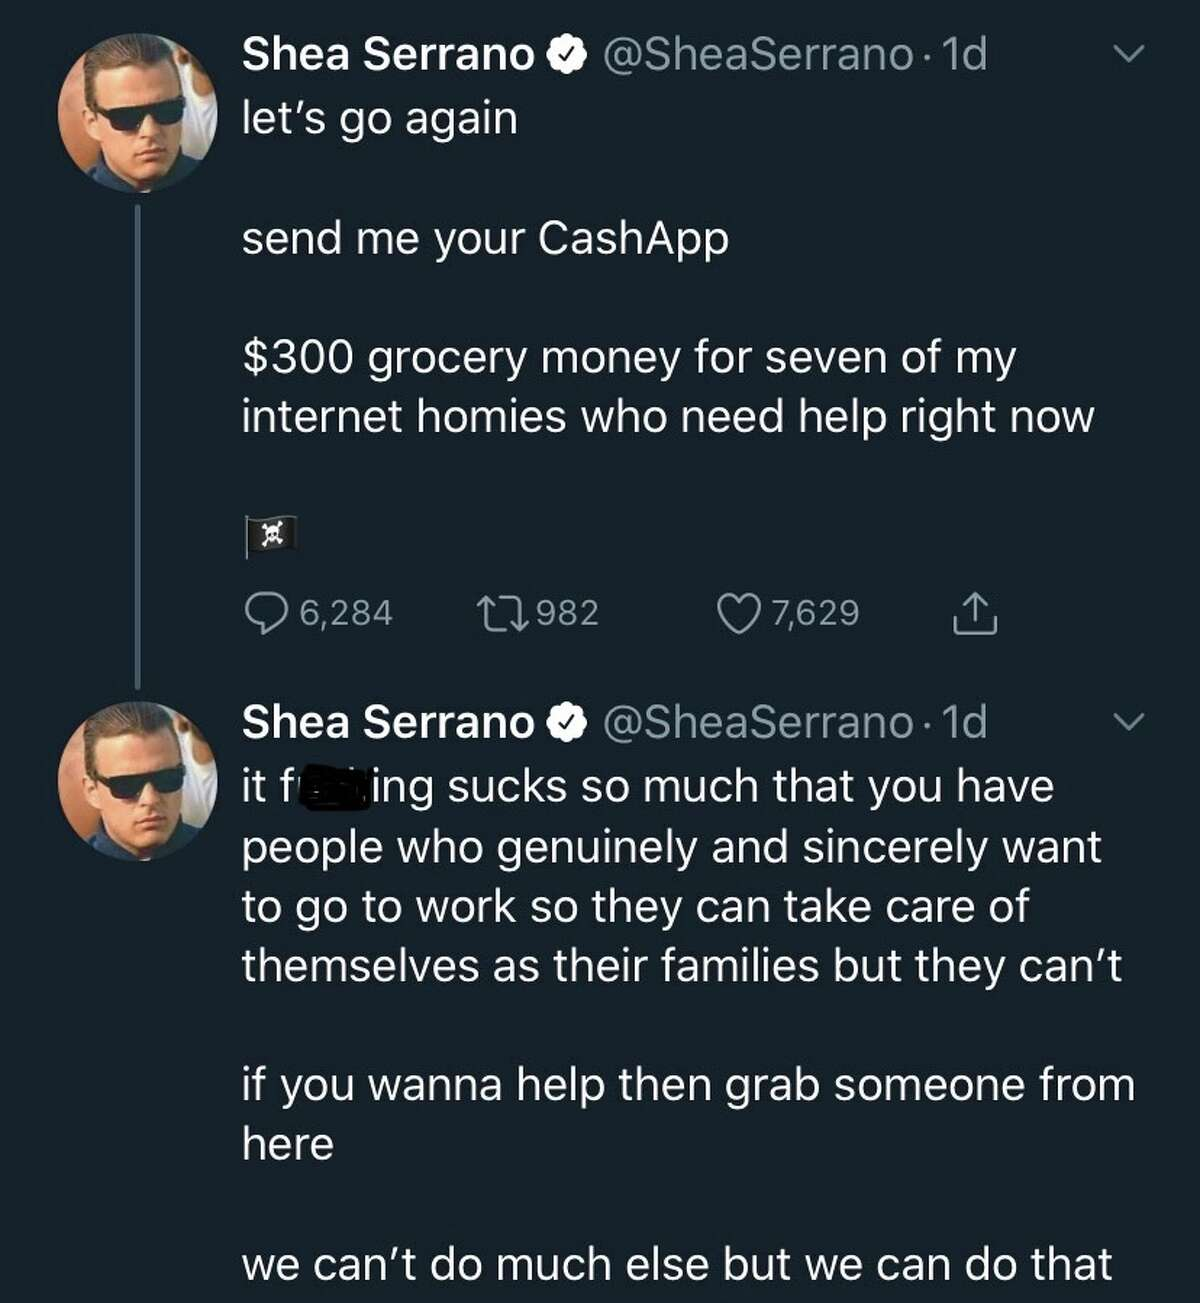 Best-selling author Shea Serrano posted another one of his famous giveaways to help his followers in need (last week even former-President Barrack Obama praised Serrano's efforts).